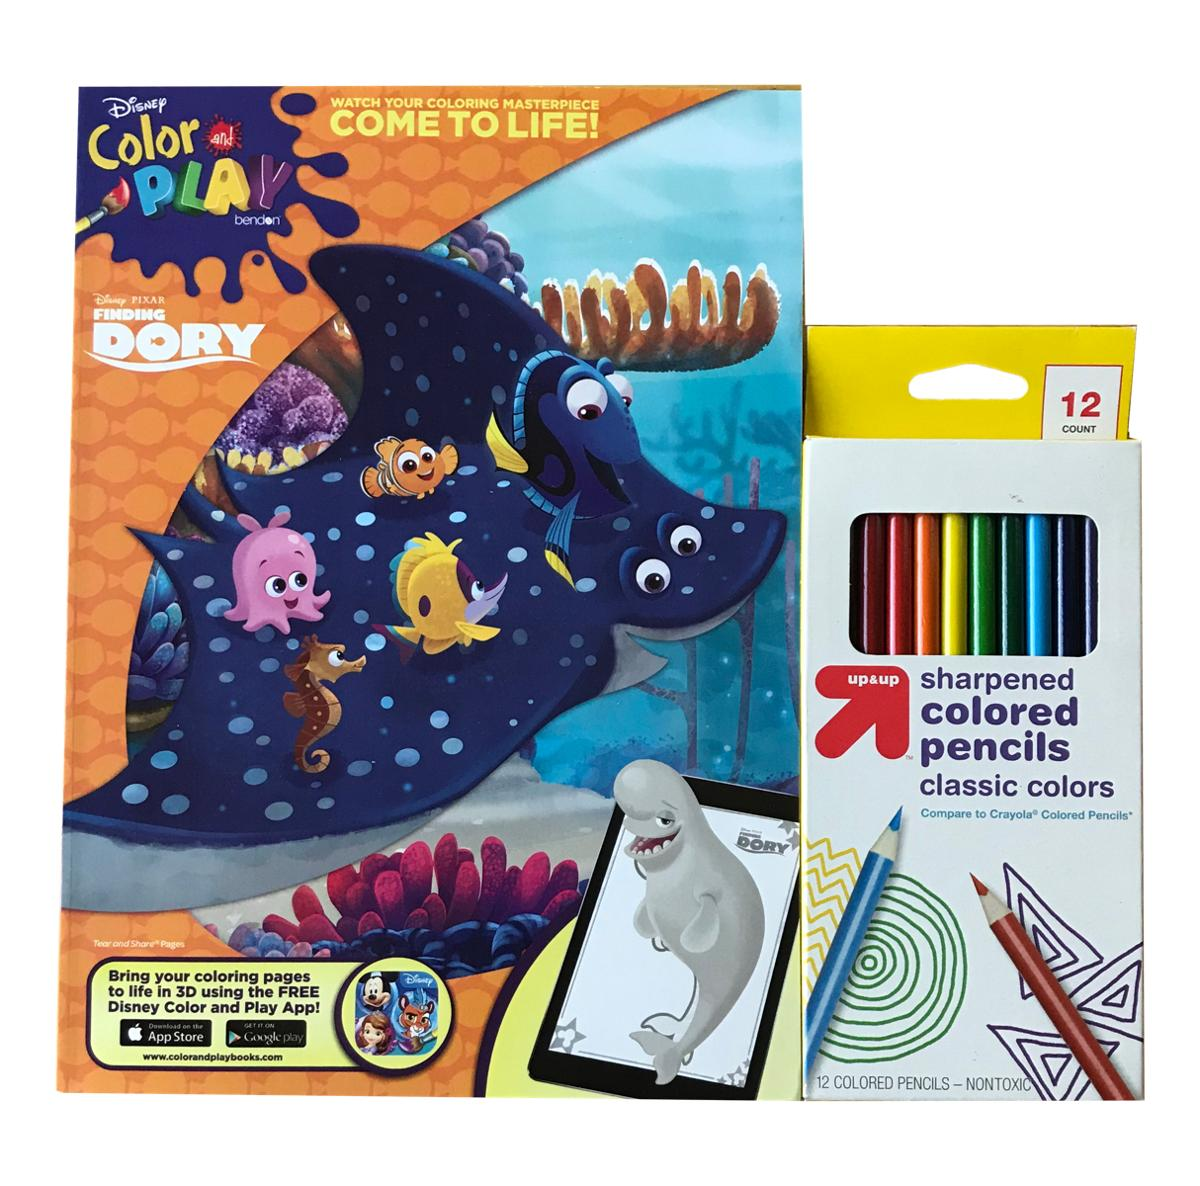 Dory Coloring Activity Book and Colored Pencils